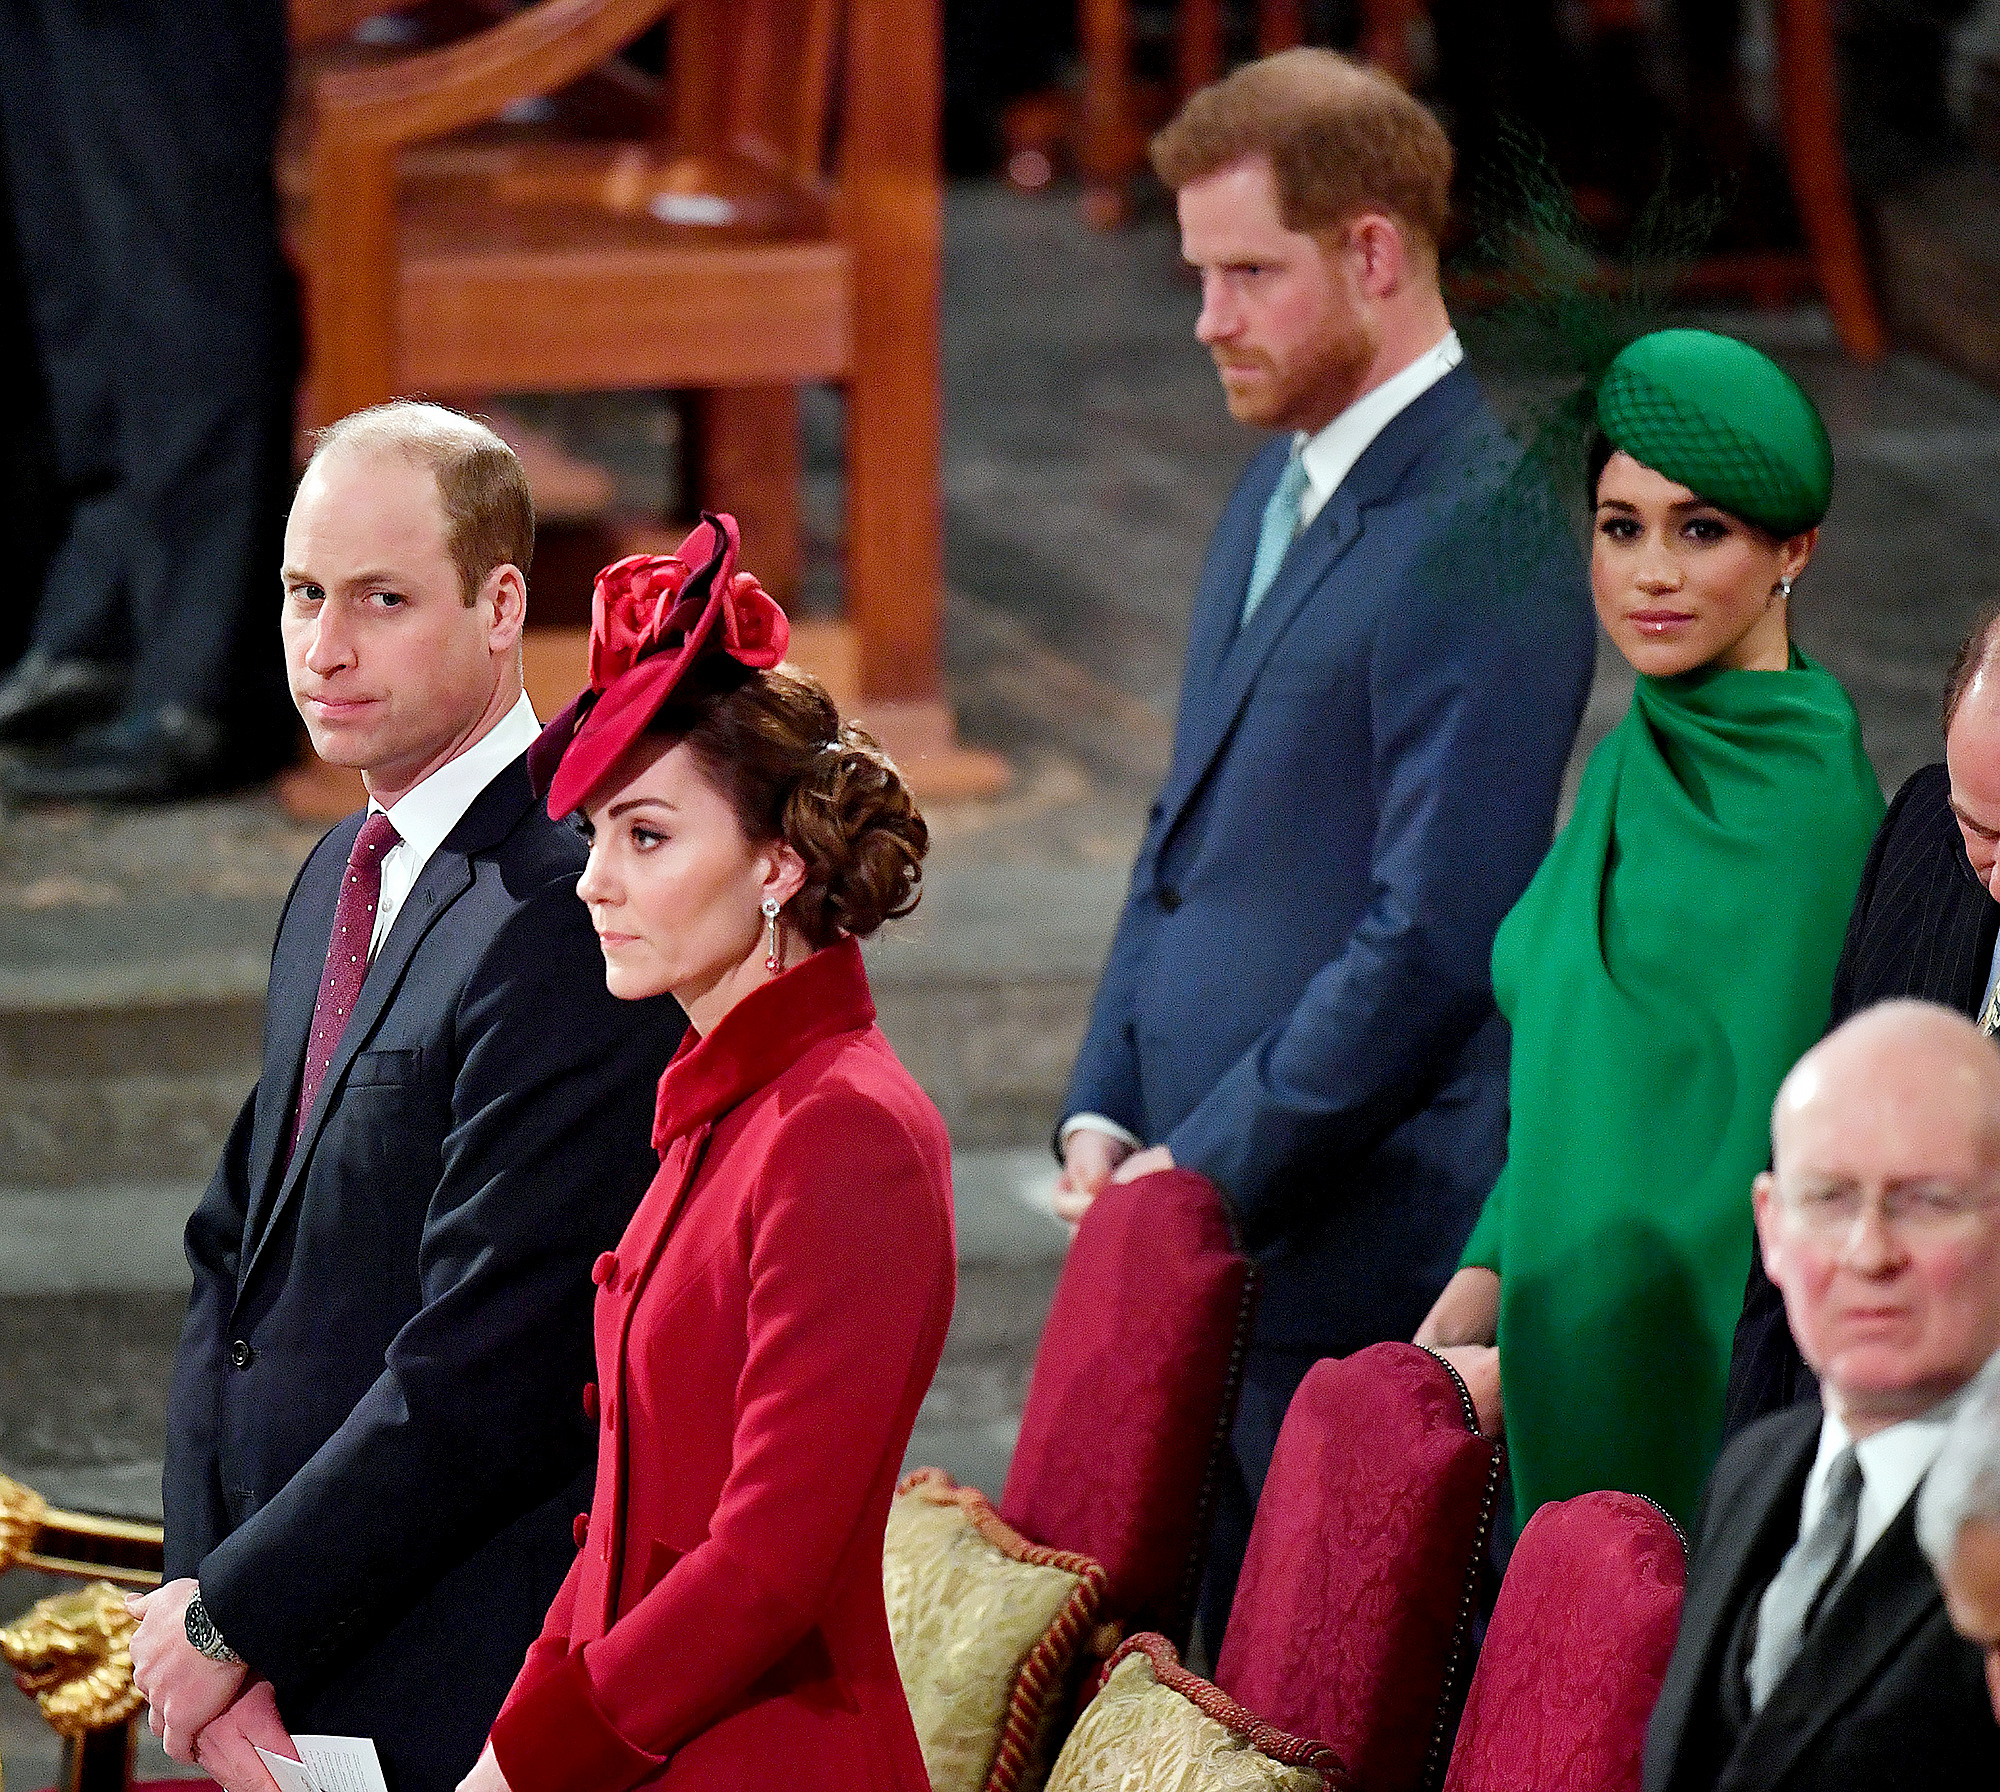 Prince William and Duchess Kate Seemingly Ignore Prince Harry and Meghan Markle at Commonwealth Service